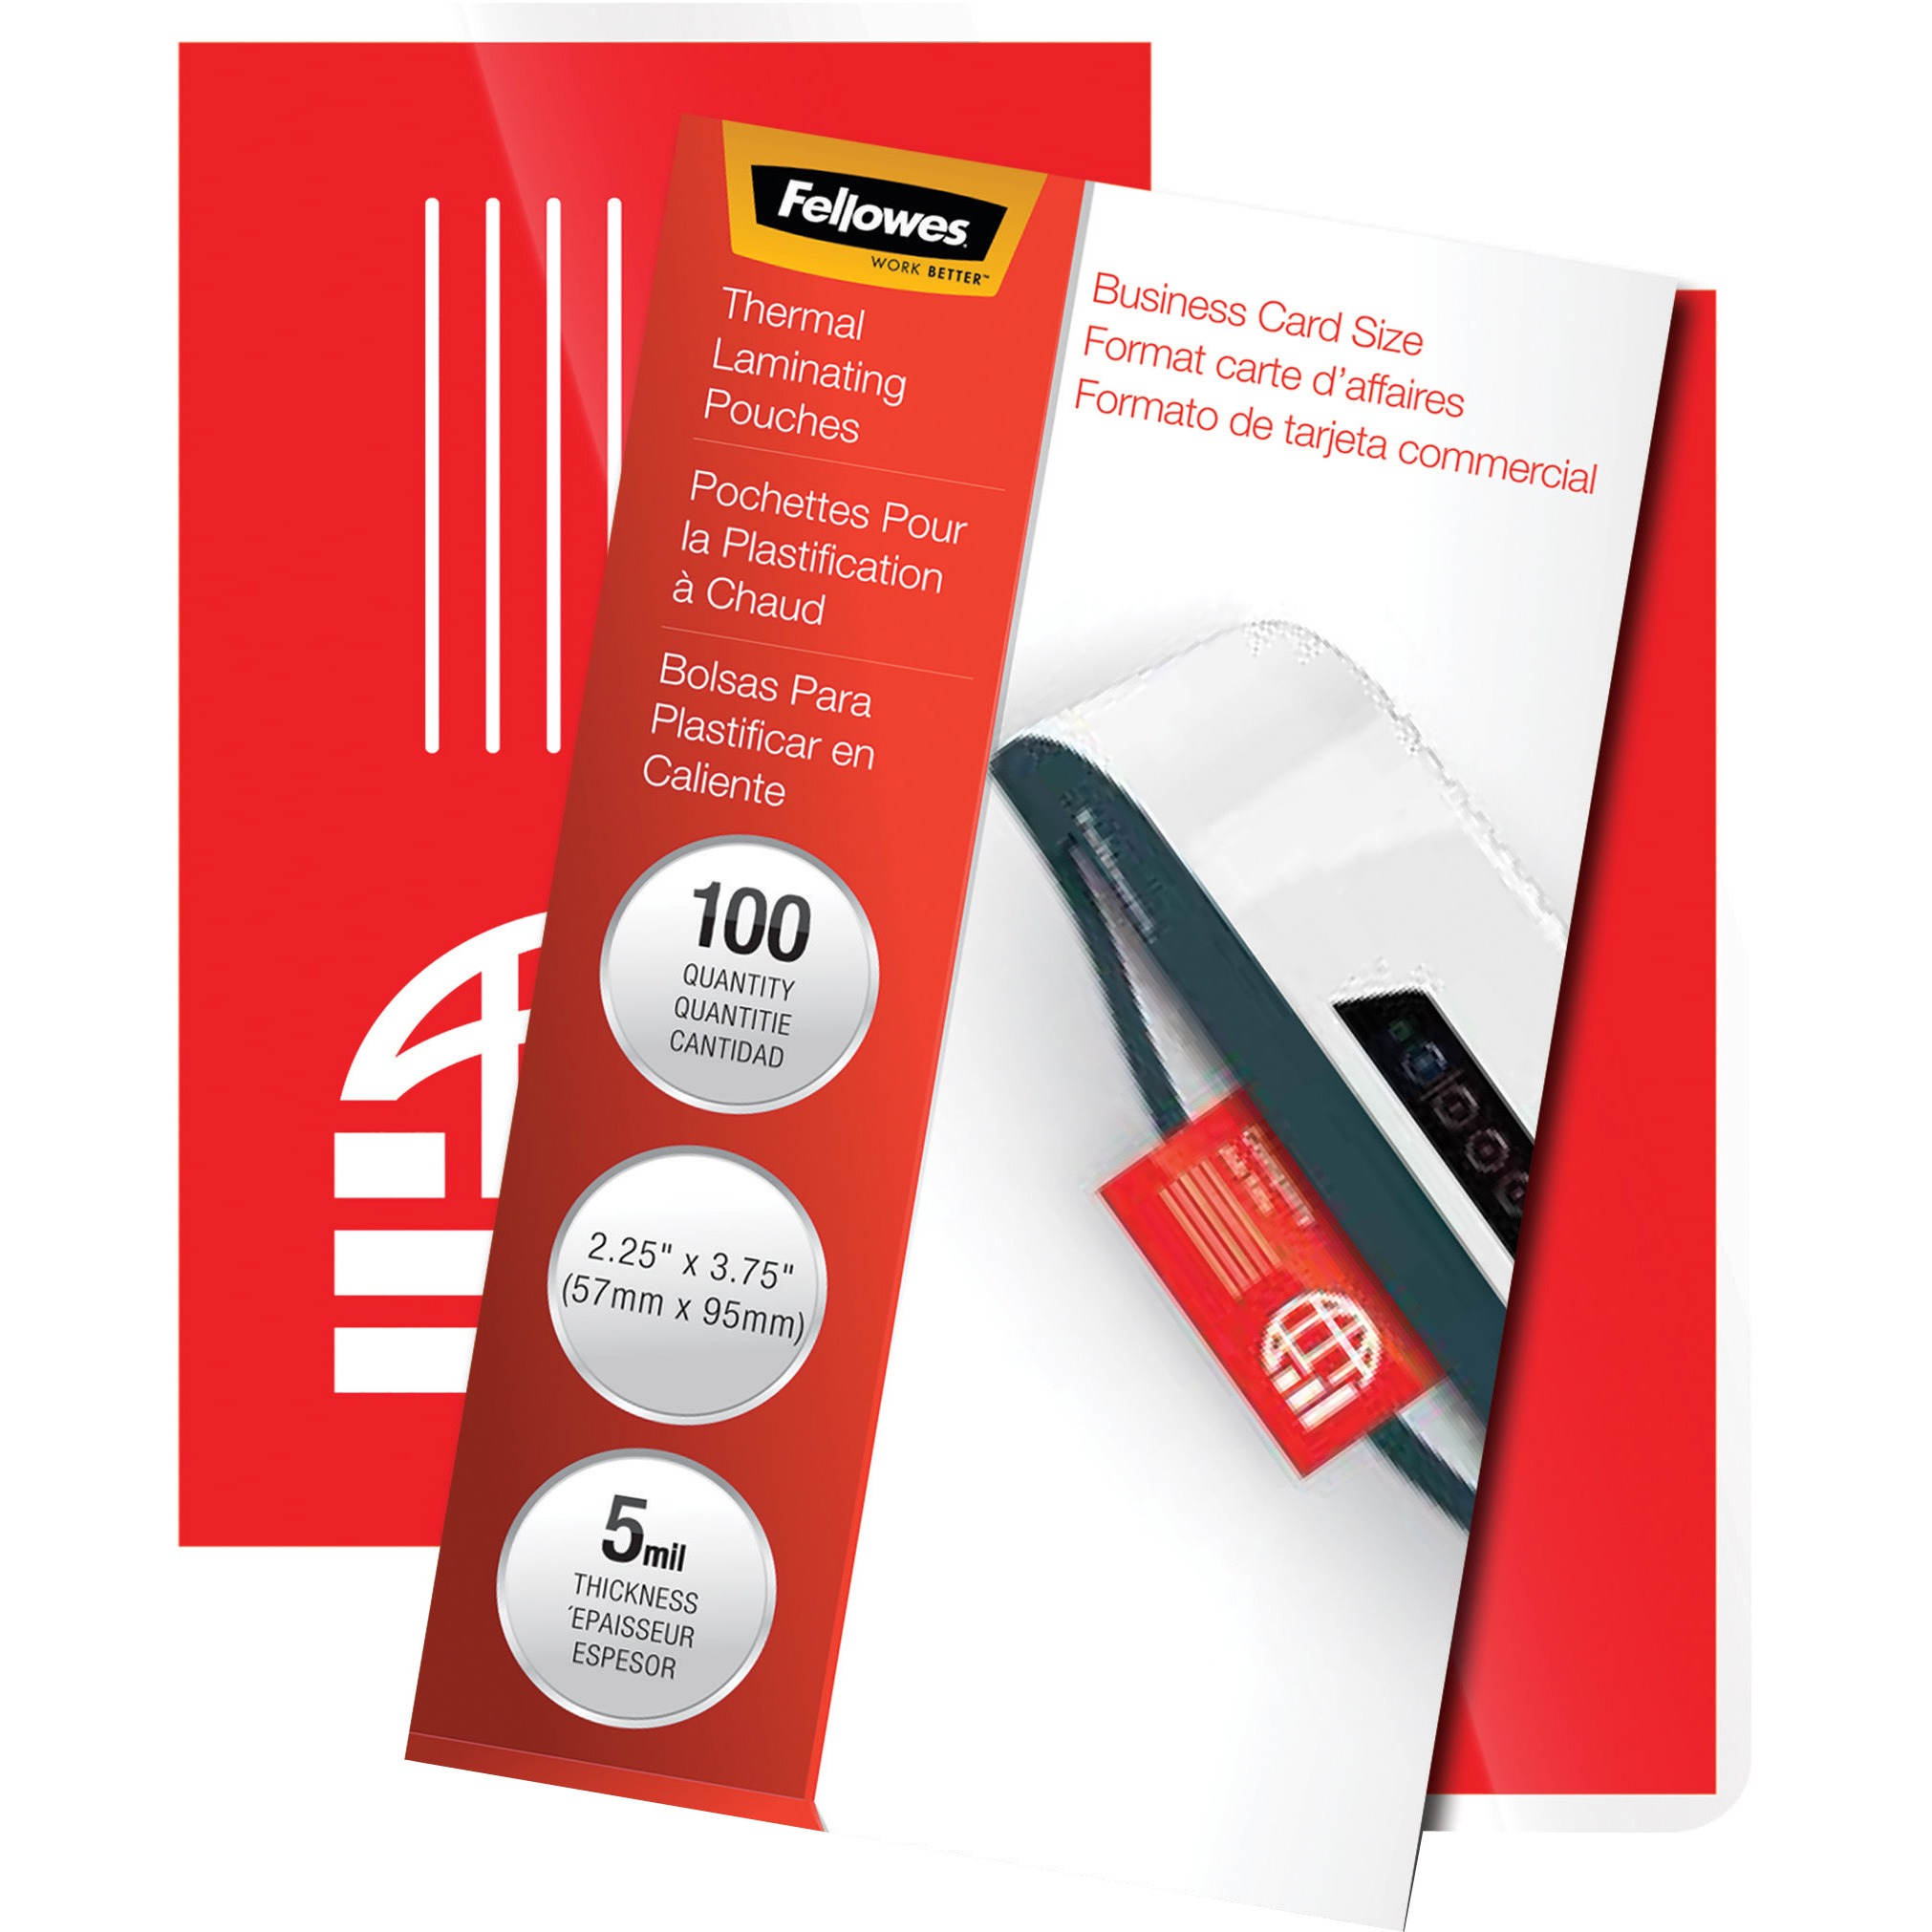 Fellowes Glossy Pouches - Business Card, 5 mil, 100 pack